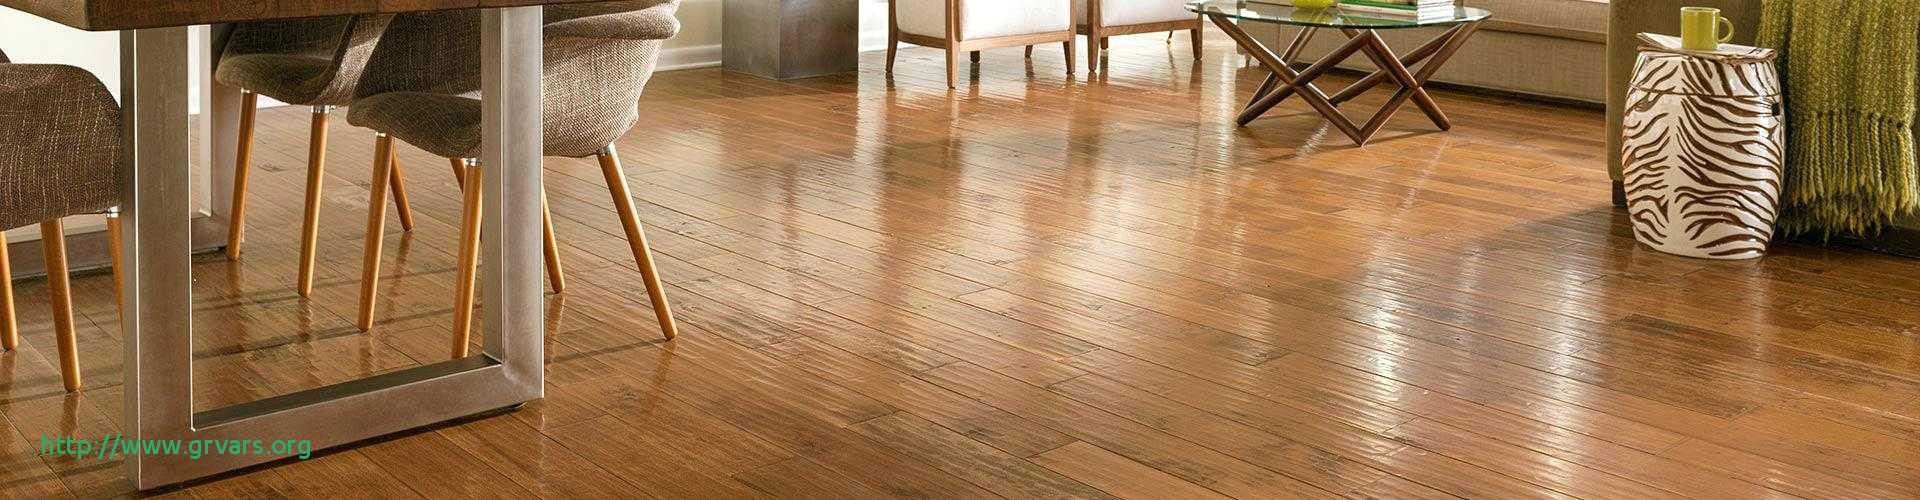 lowes oak hardwood flooring of how much does lowes charge to install hardwood flooring inspirant od inside how much does lowes charge to install hardwood flooring inspirant od grain tile bathroom wood shower no grout porcelain pros and cons